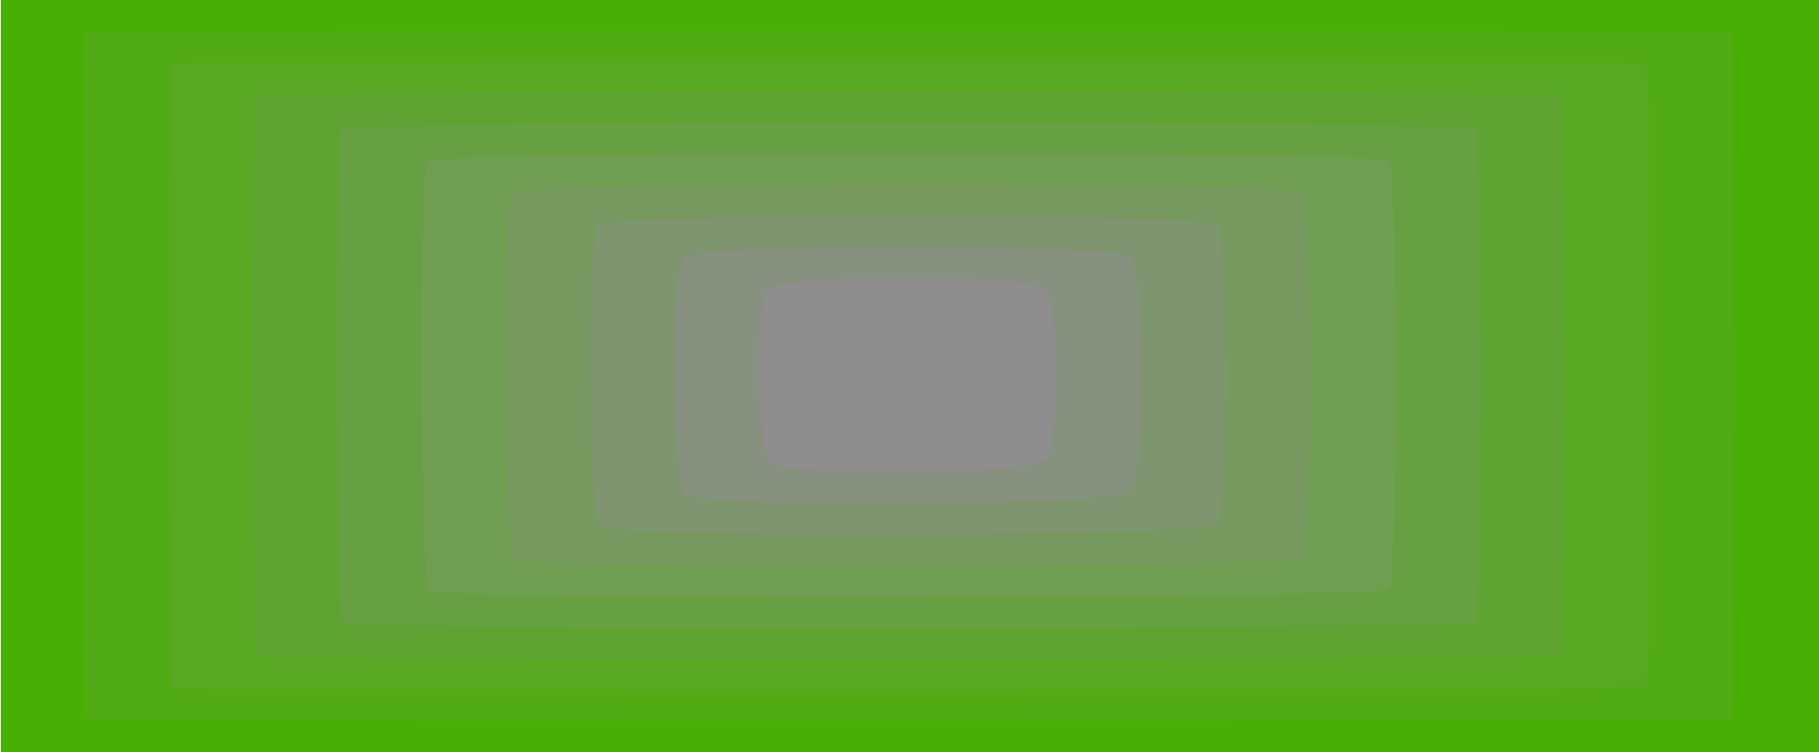 green and grey gradient  - it's just standing still, no motion